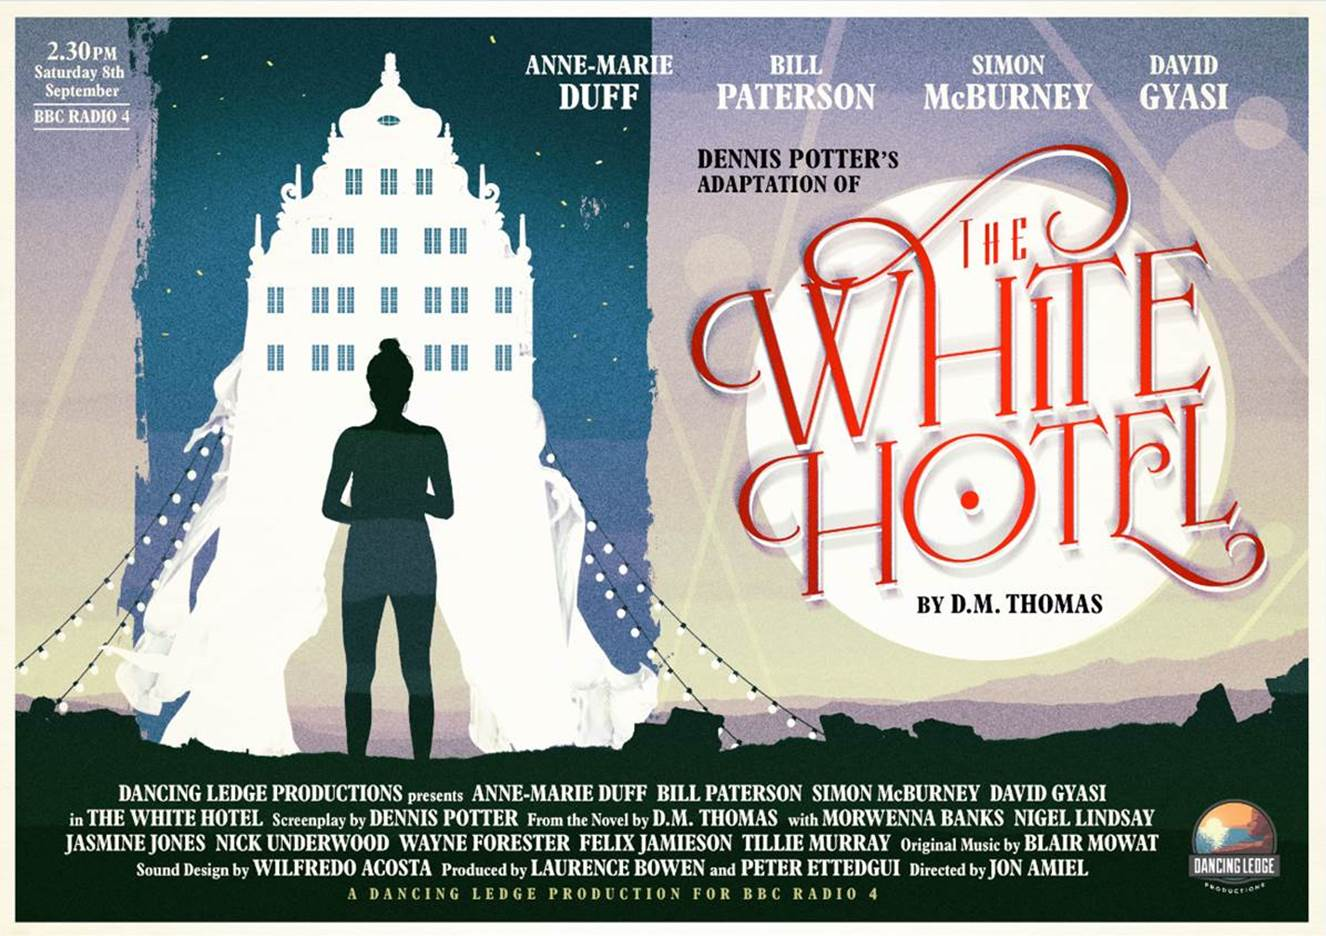 Nick Underwood / The White Hotel